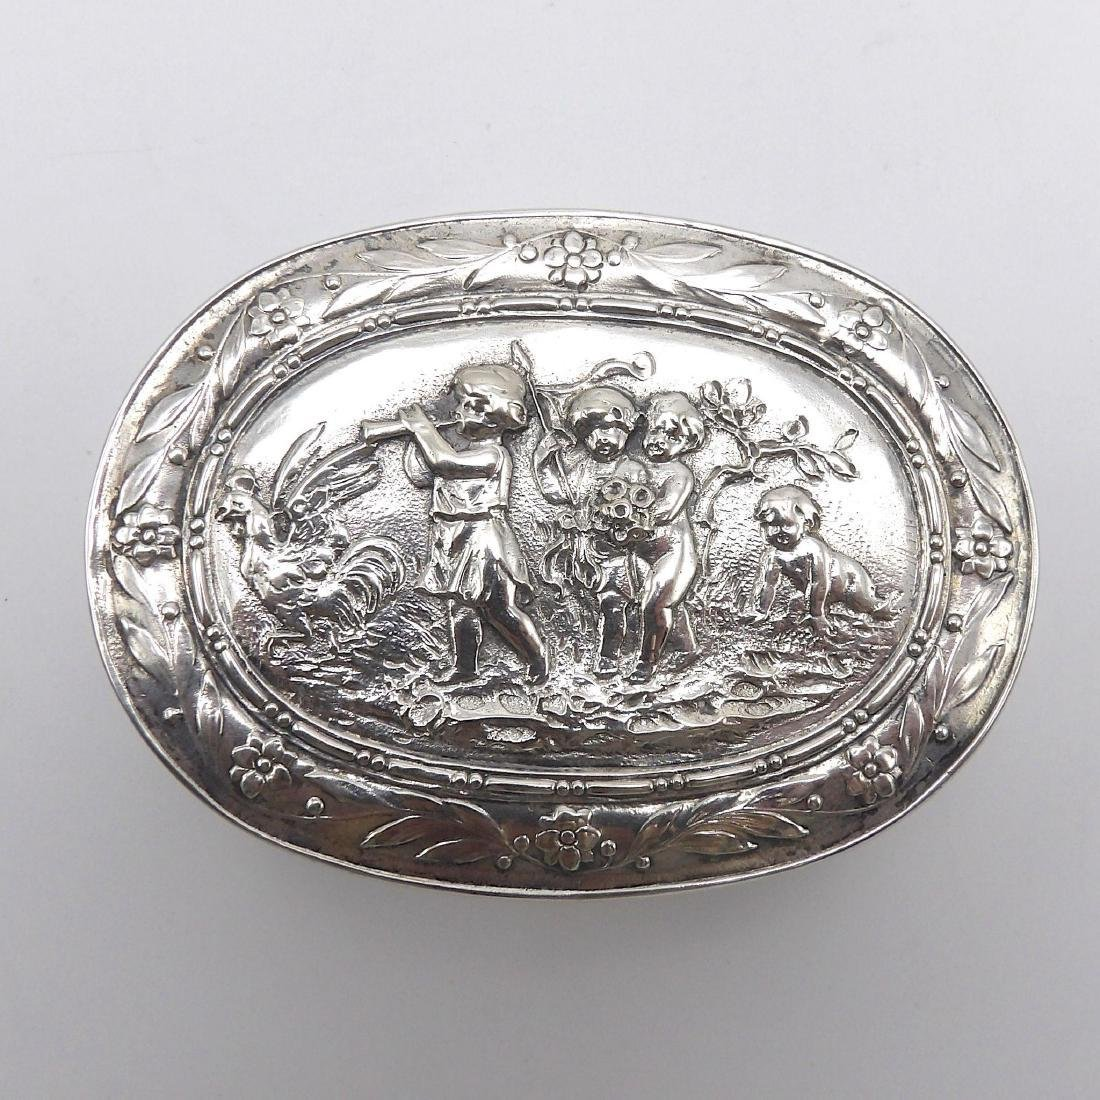 Antique Continental 830 Silver Oval Box, 1890 - 3